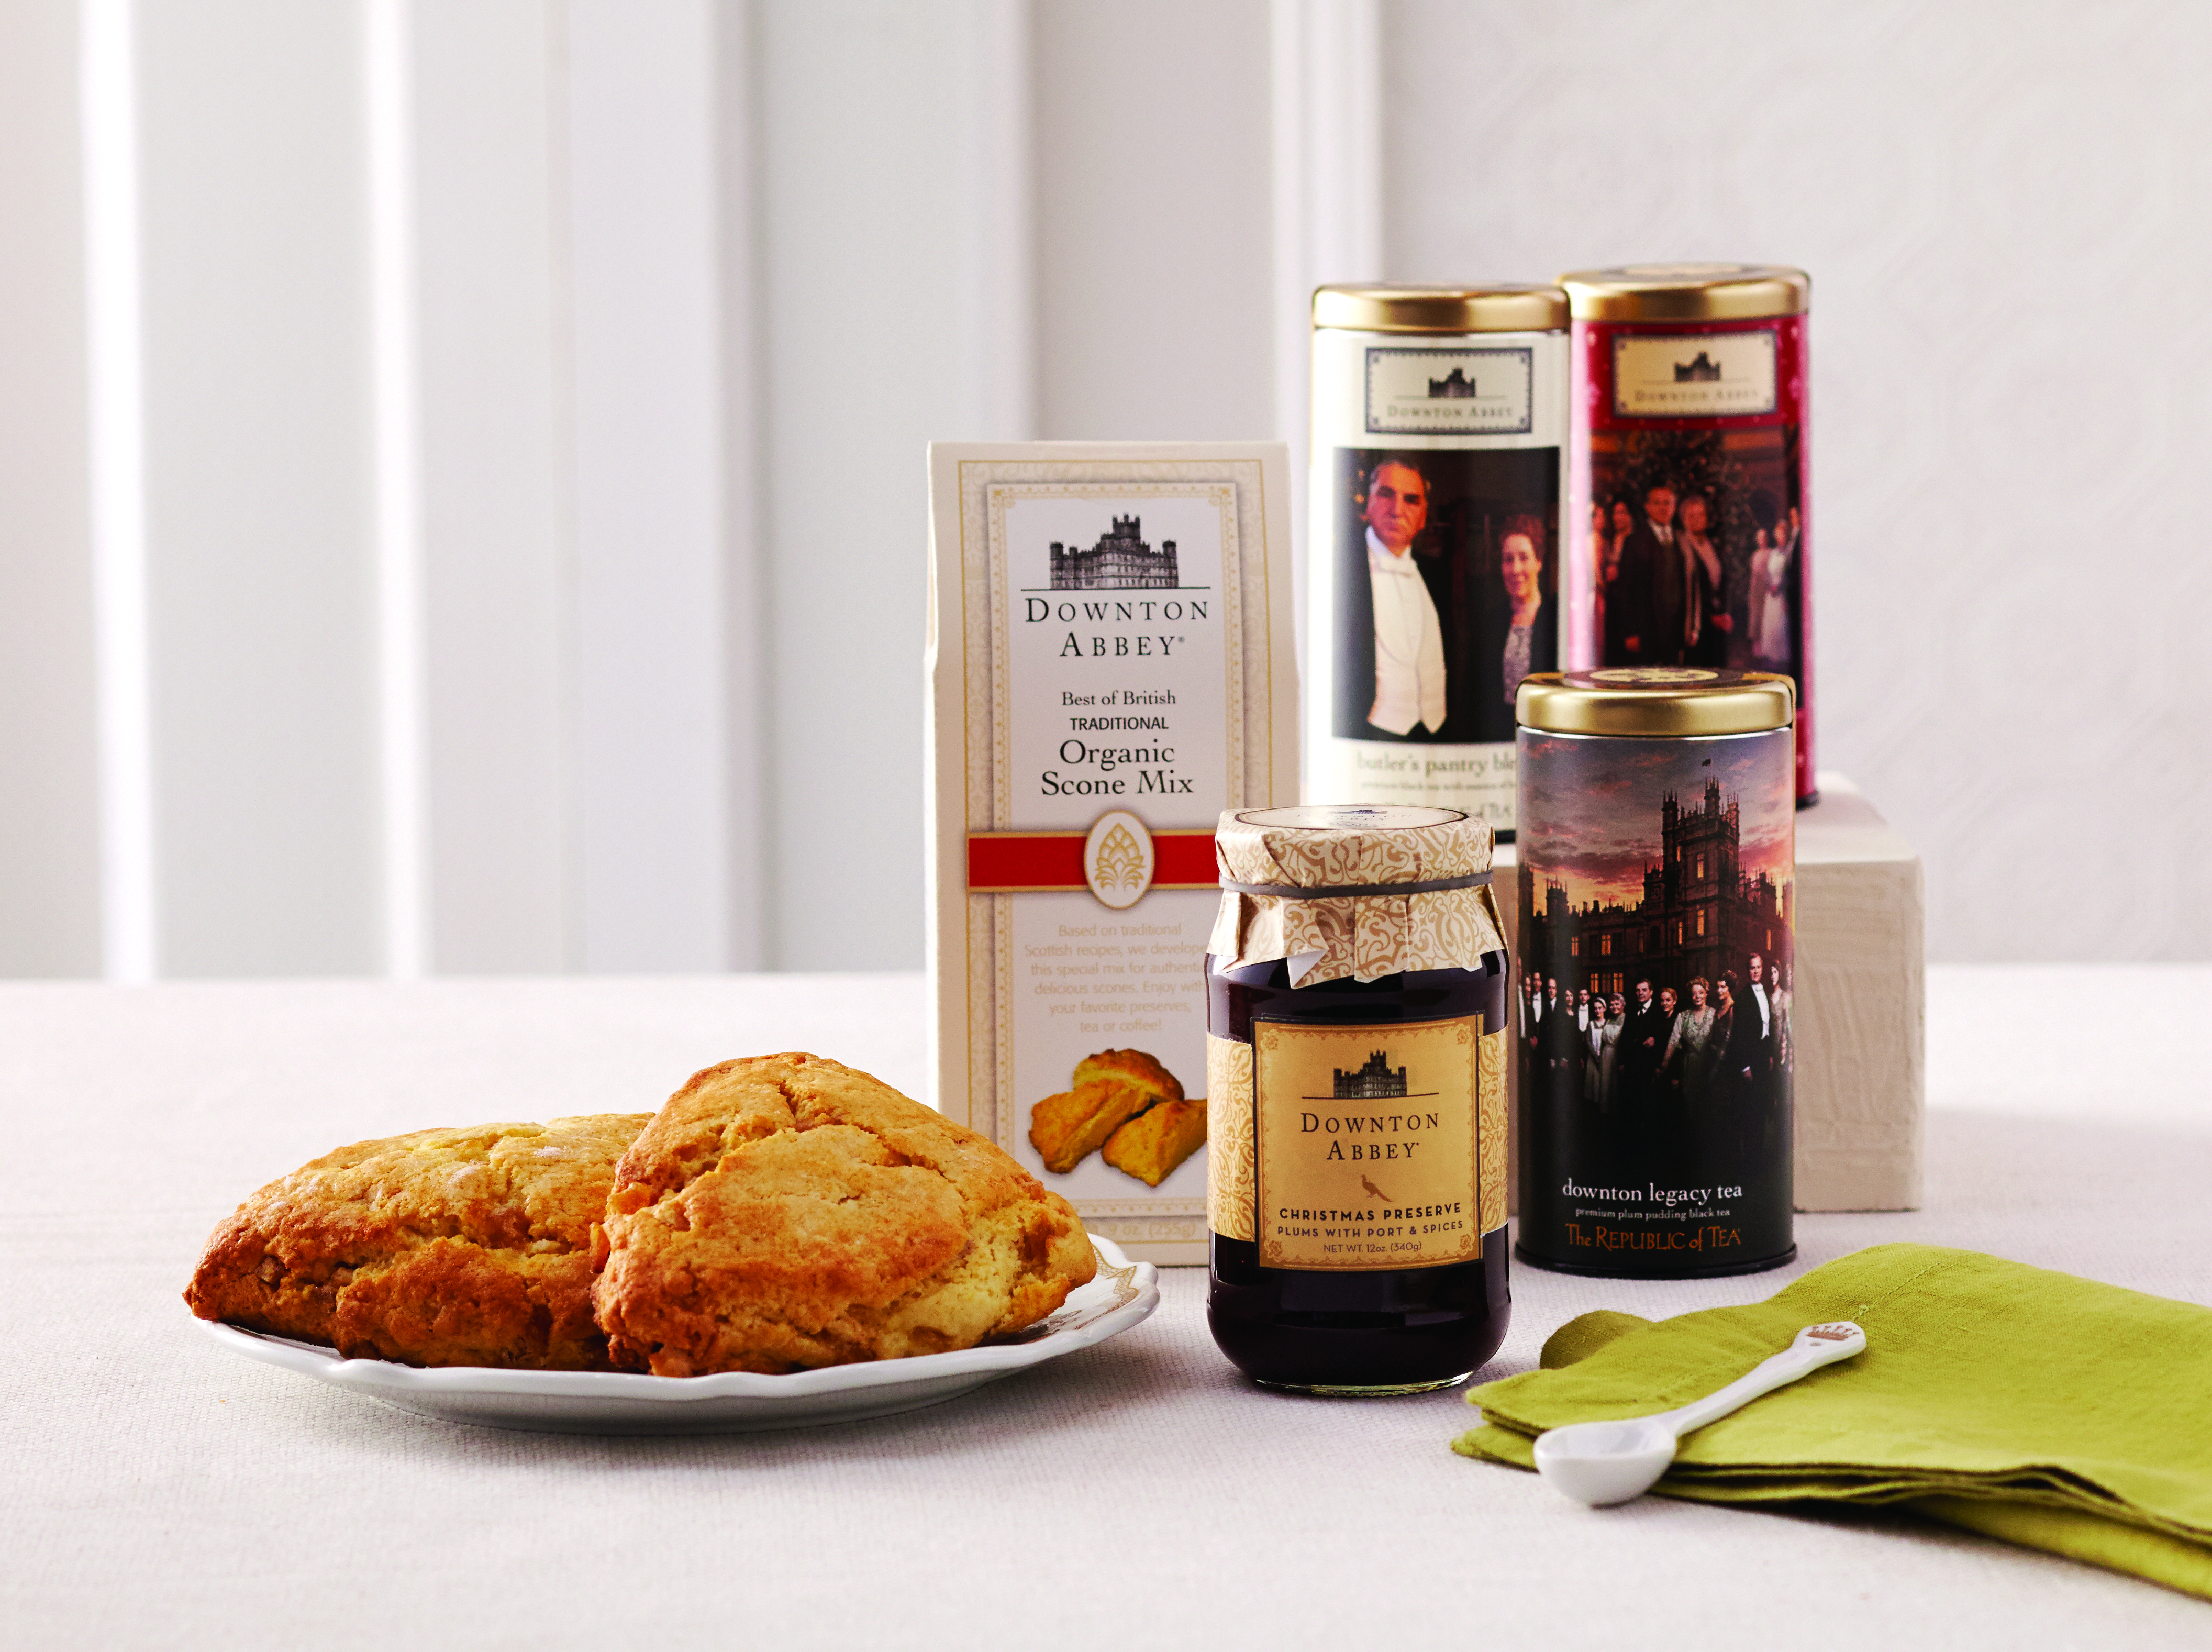 Yummy Scones and Preserves inspired by Downton Abbey at Cost Plus World Market